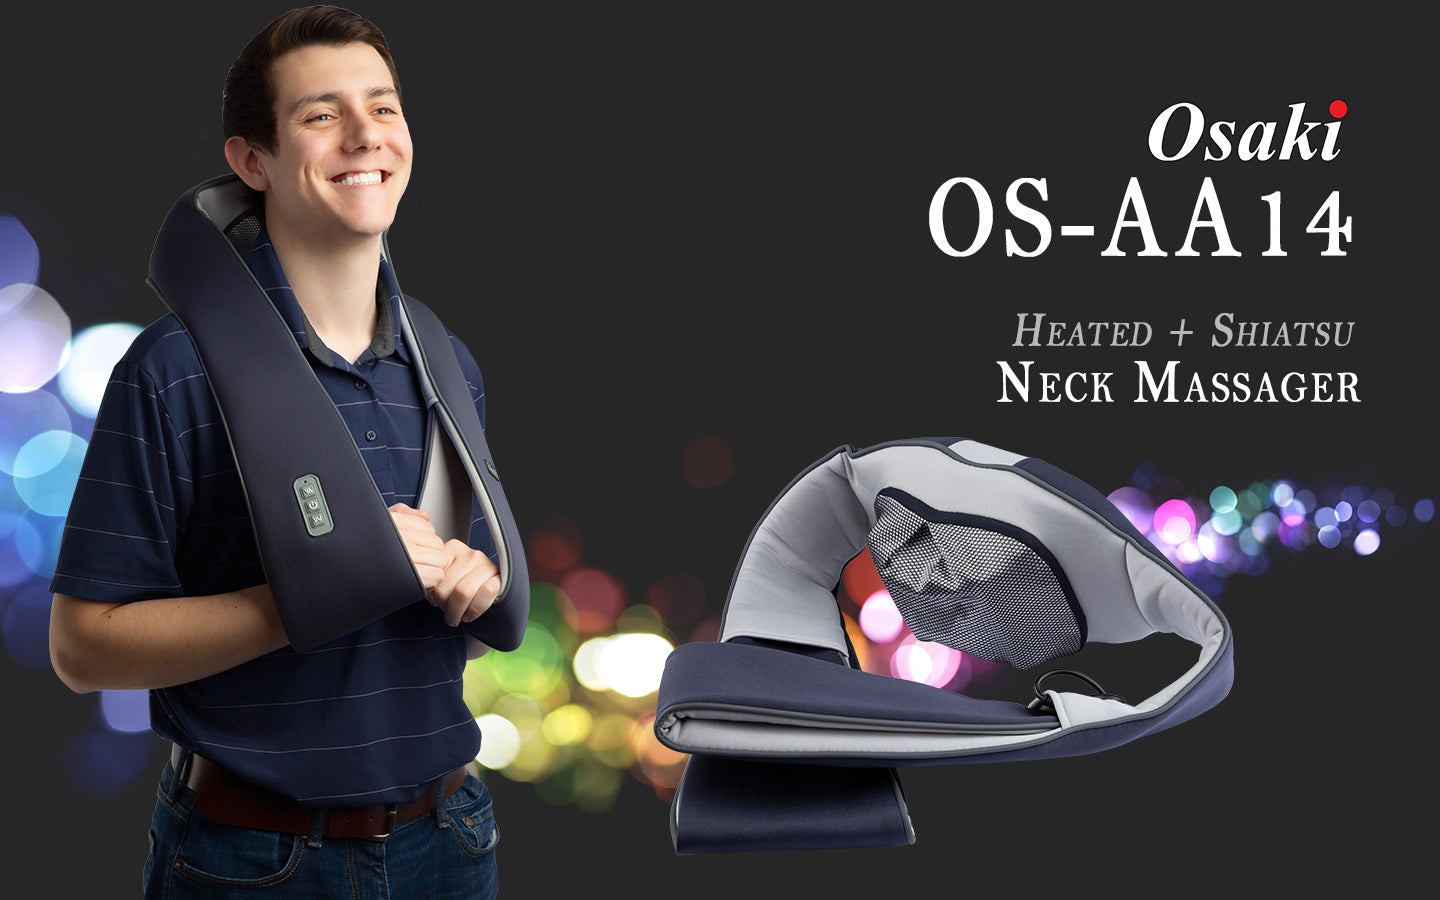 OS-AA14 Neck Massager Banner